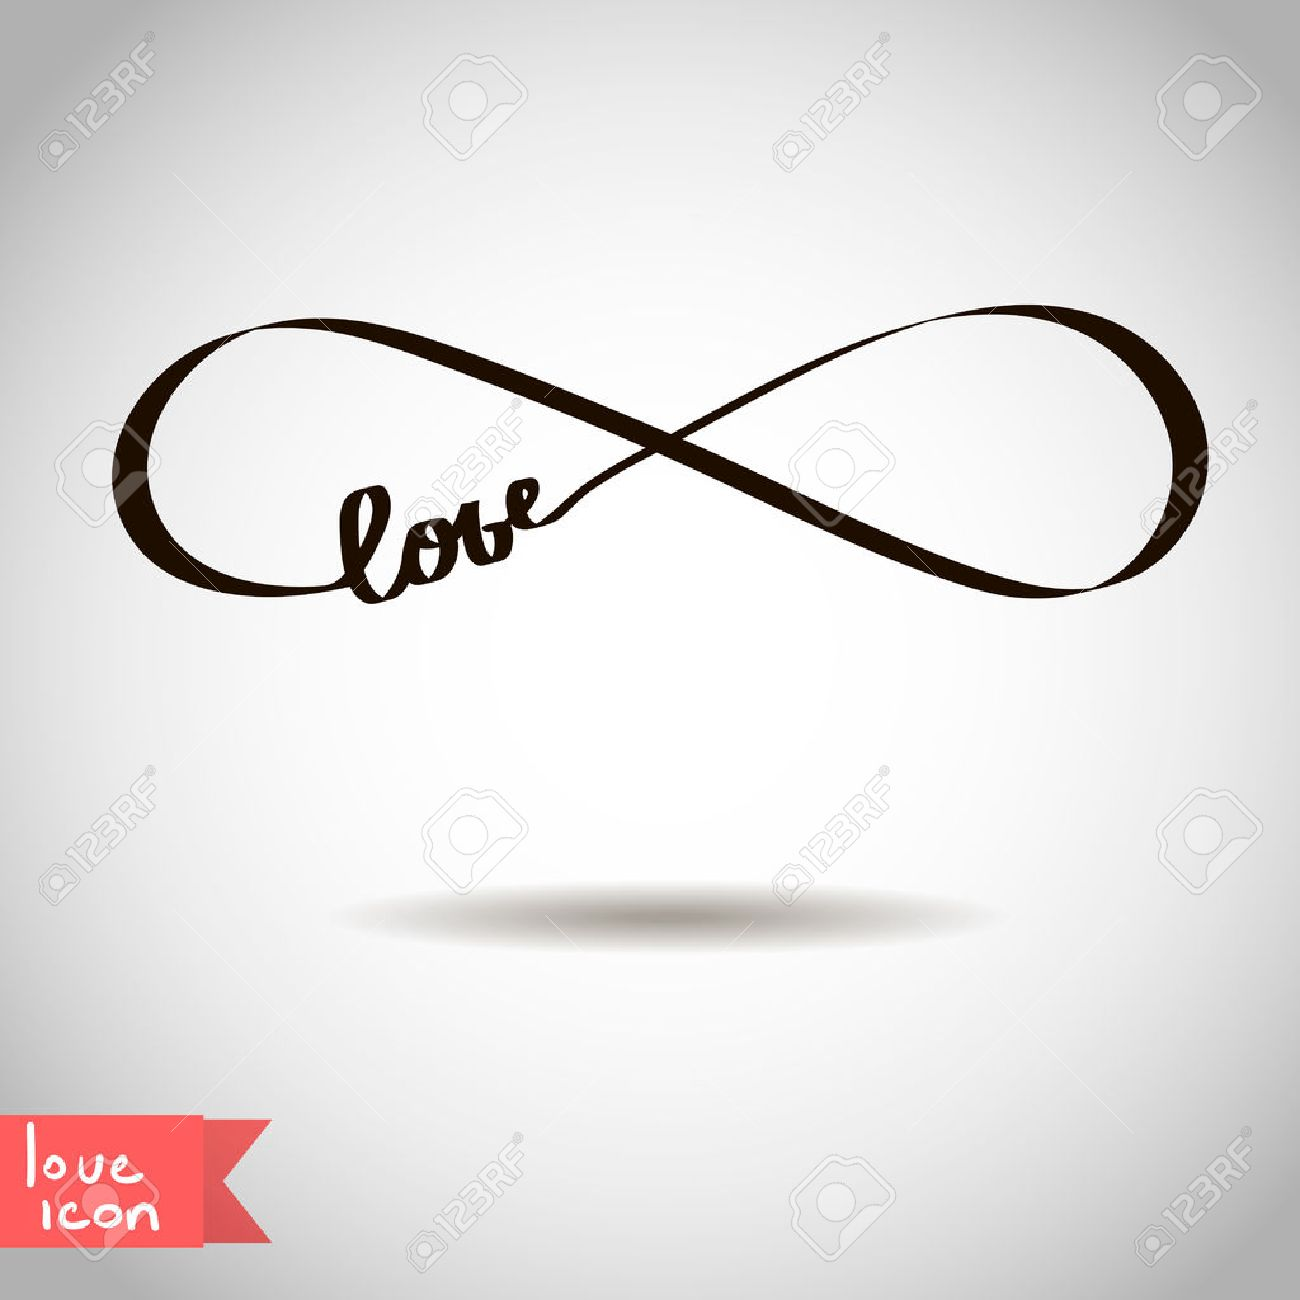 Eternal love icon valentines day vector symbol royalty free eternal love icon valentines day vector symbol stock vector 24823554 biocorpaavc Images